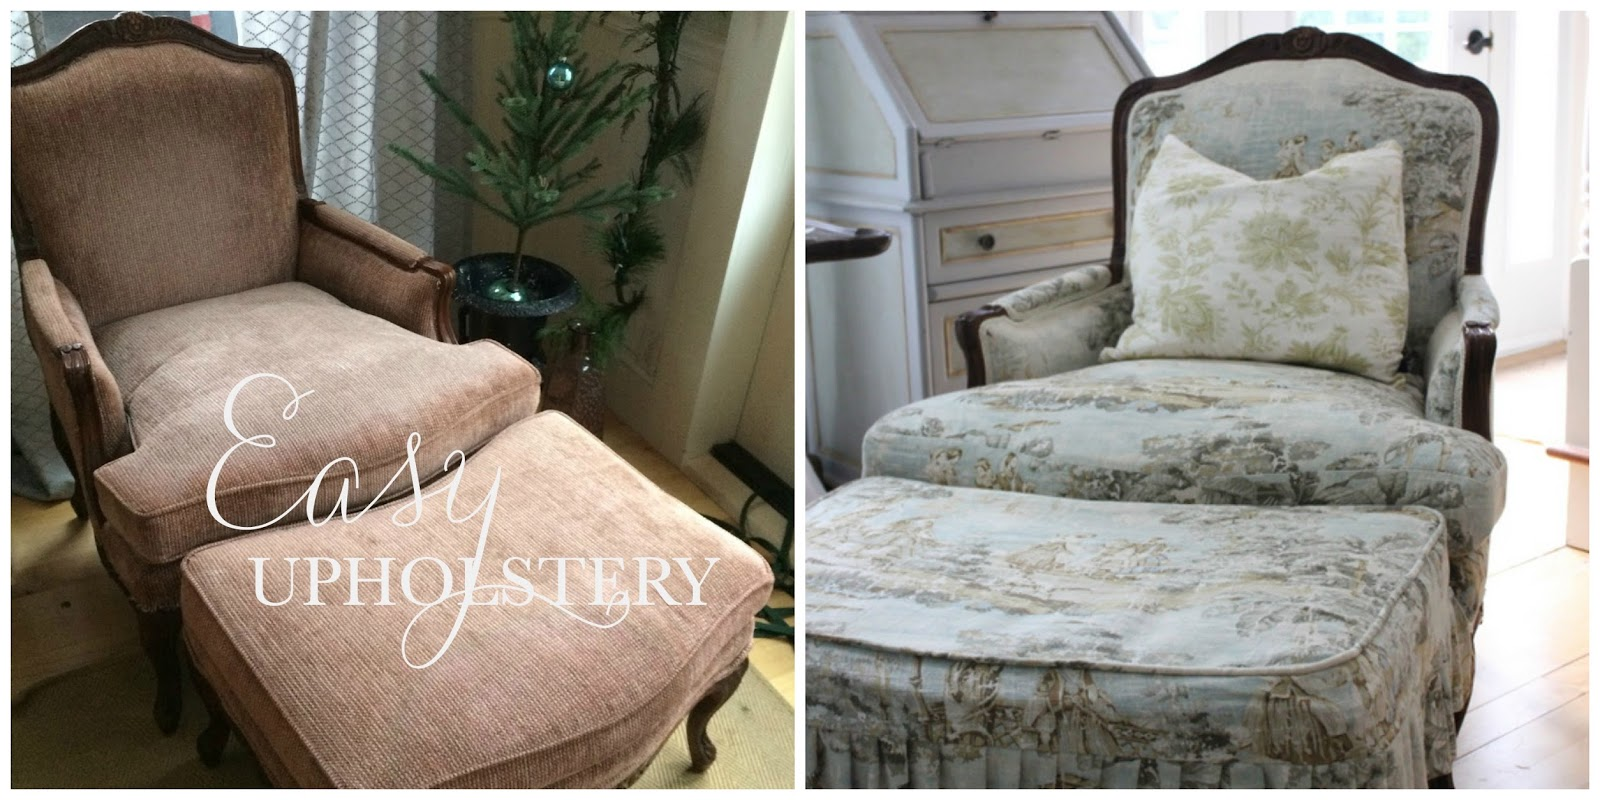 As I Had Never Upholstered Before, I Went About It In A Different Fashion,